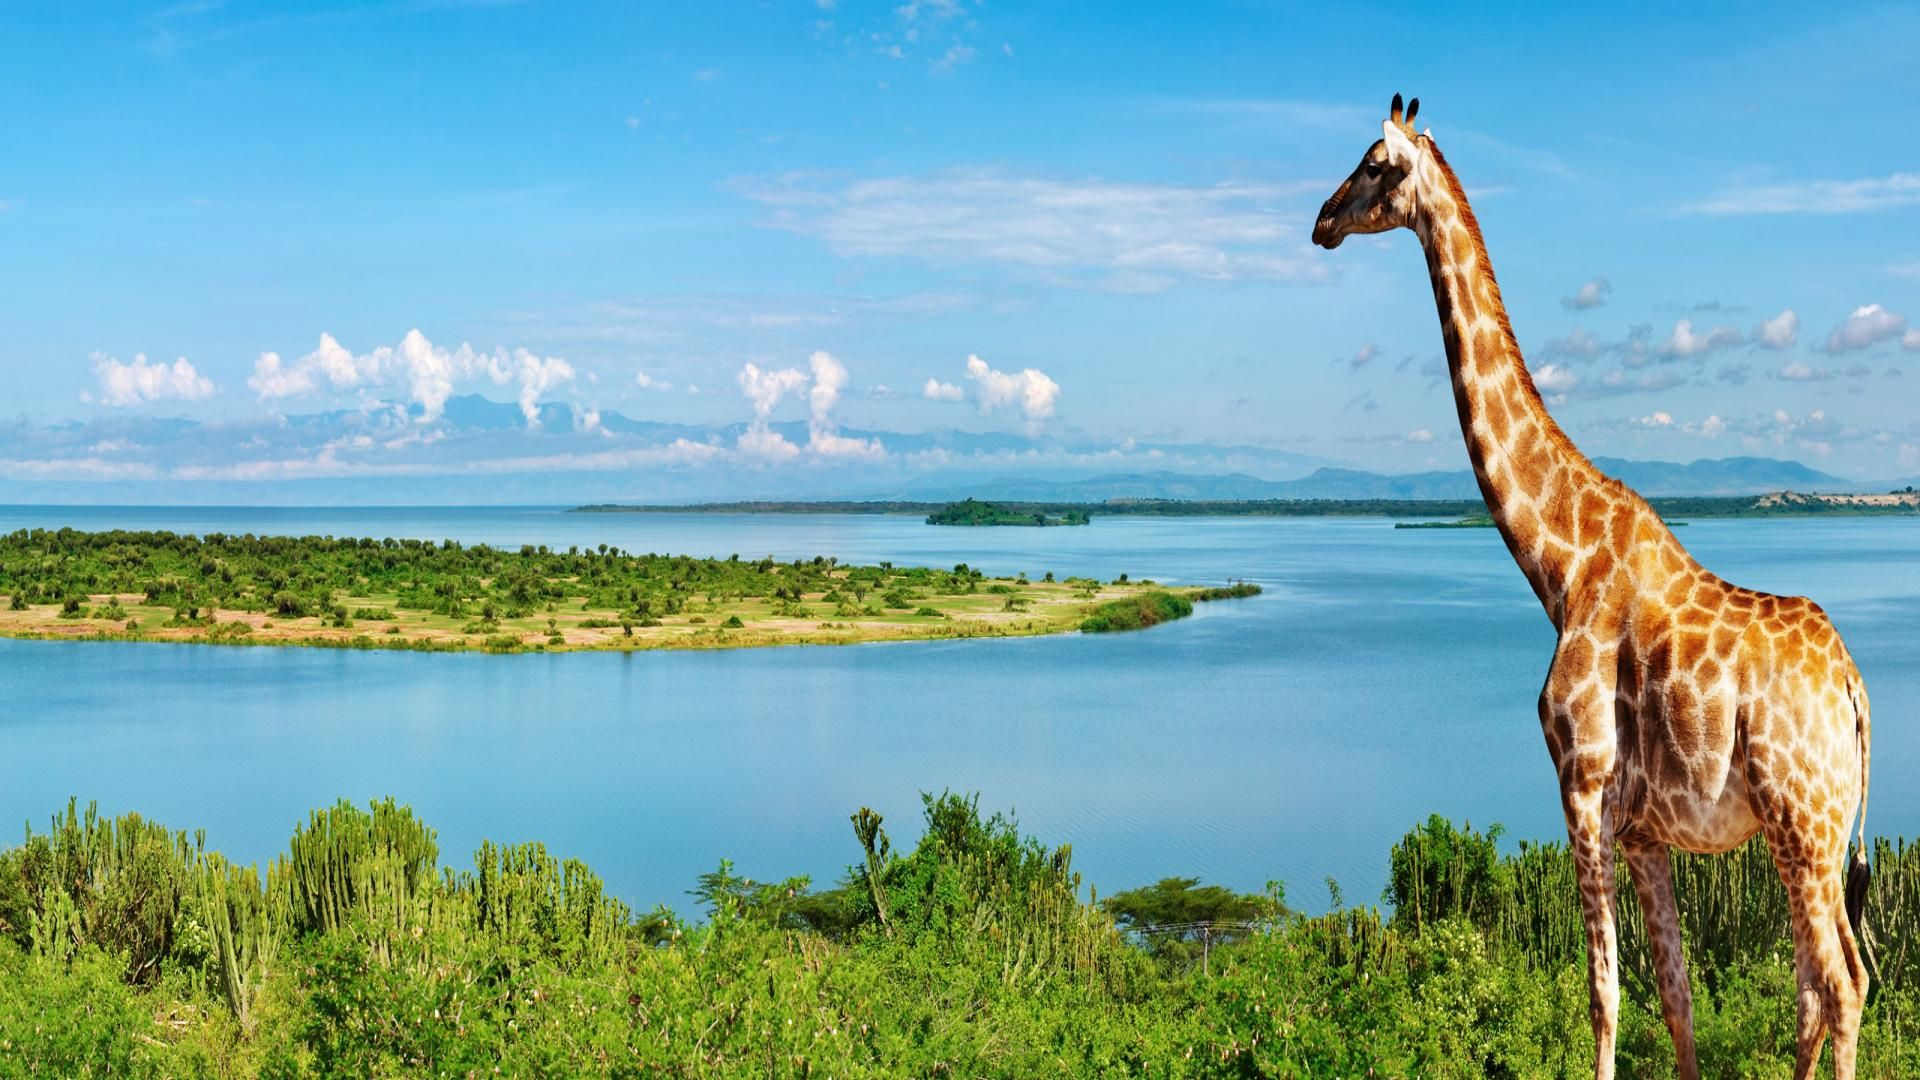 Photo Of The Nile River In Africa